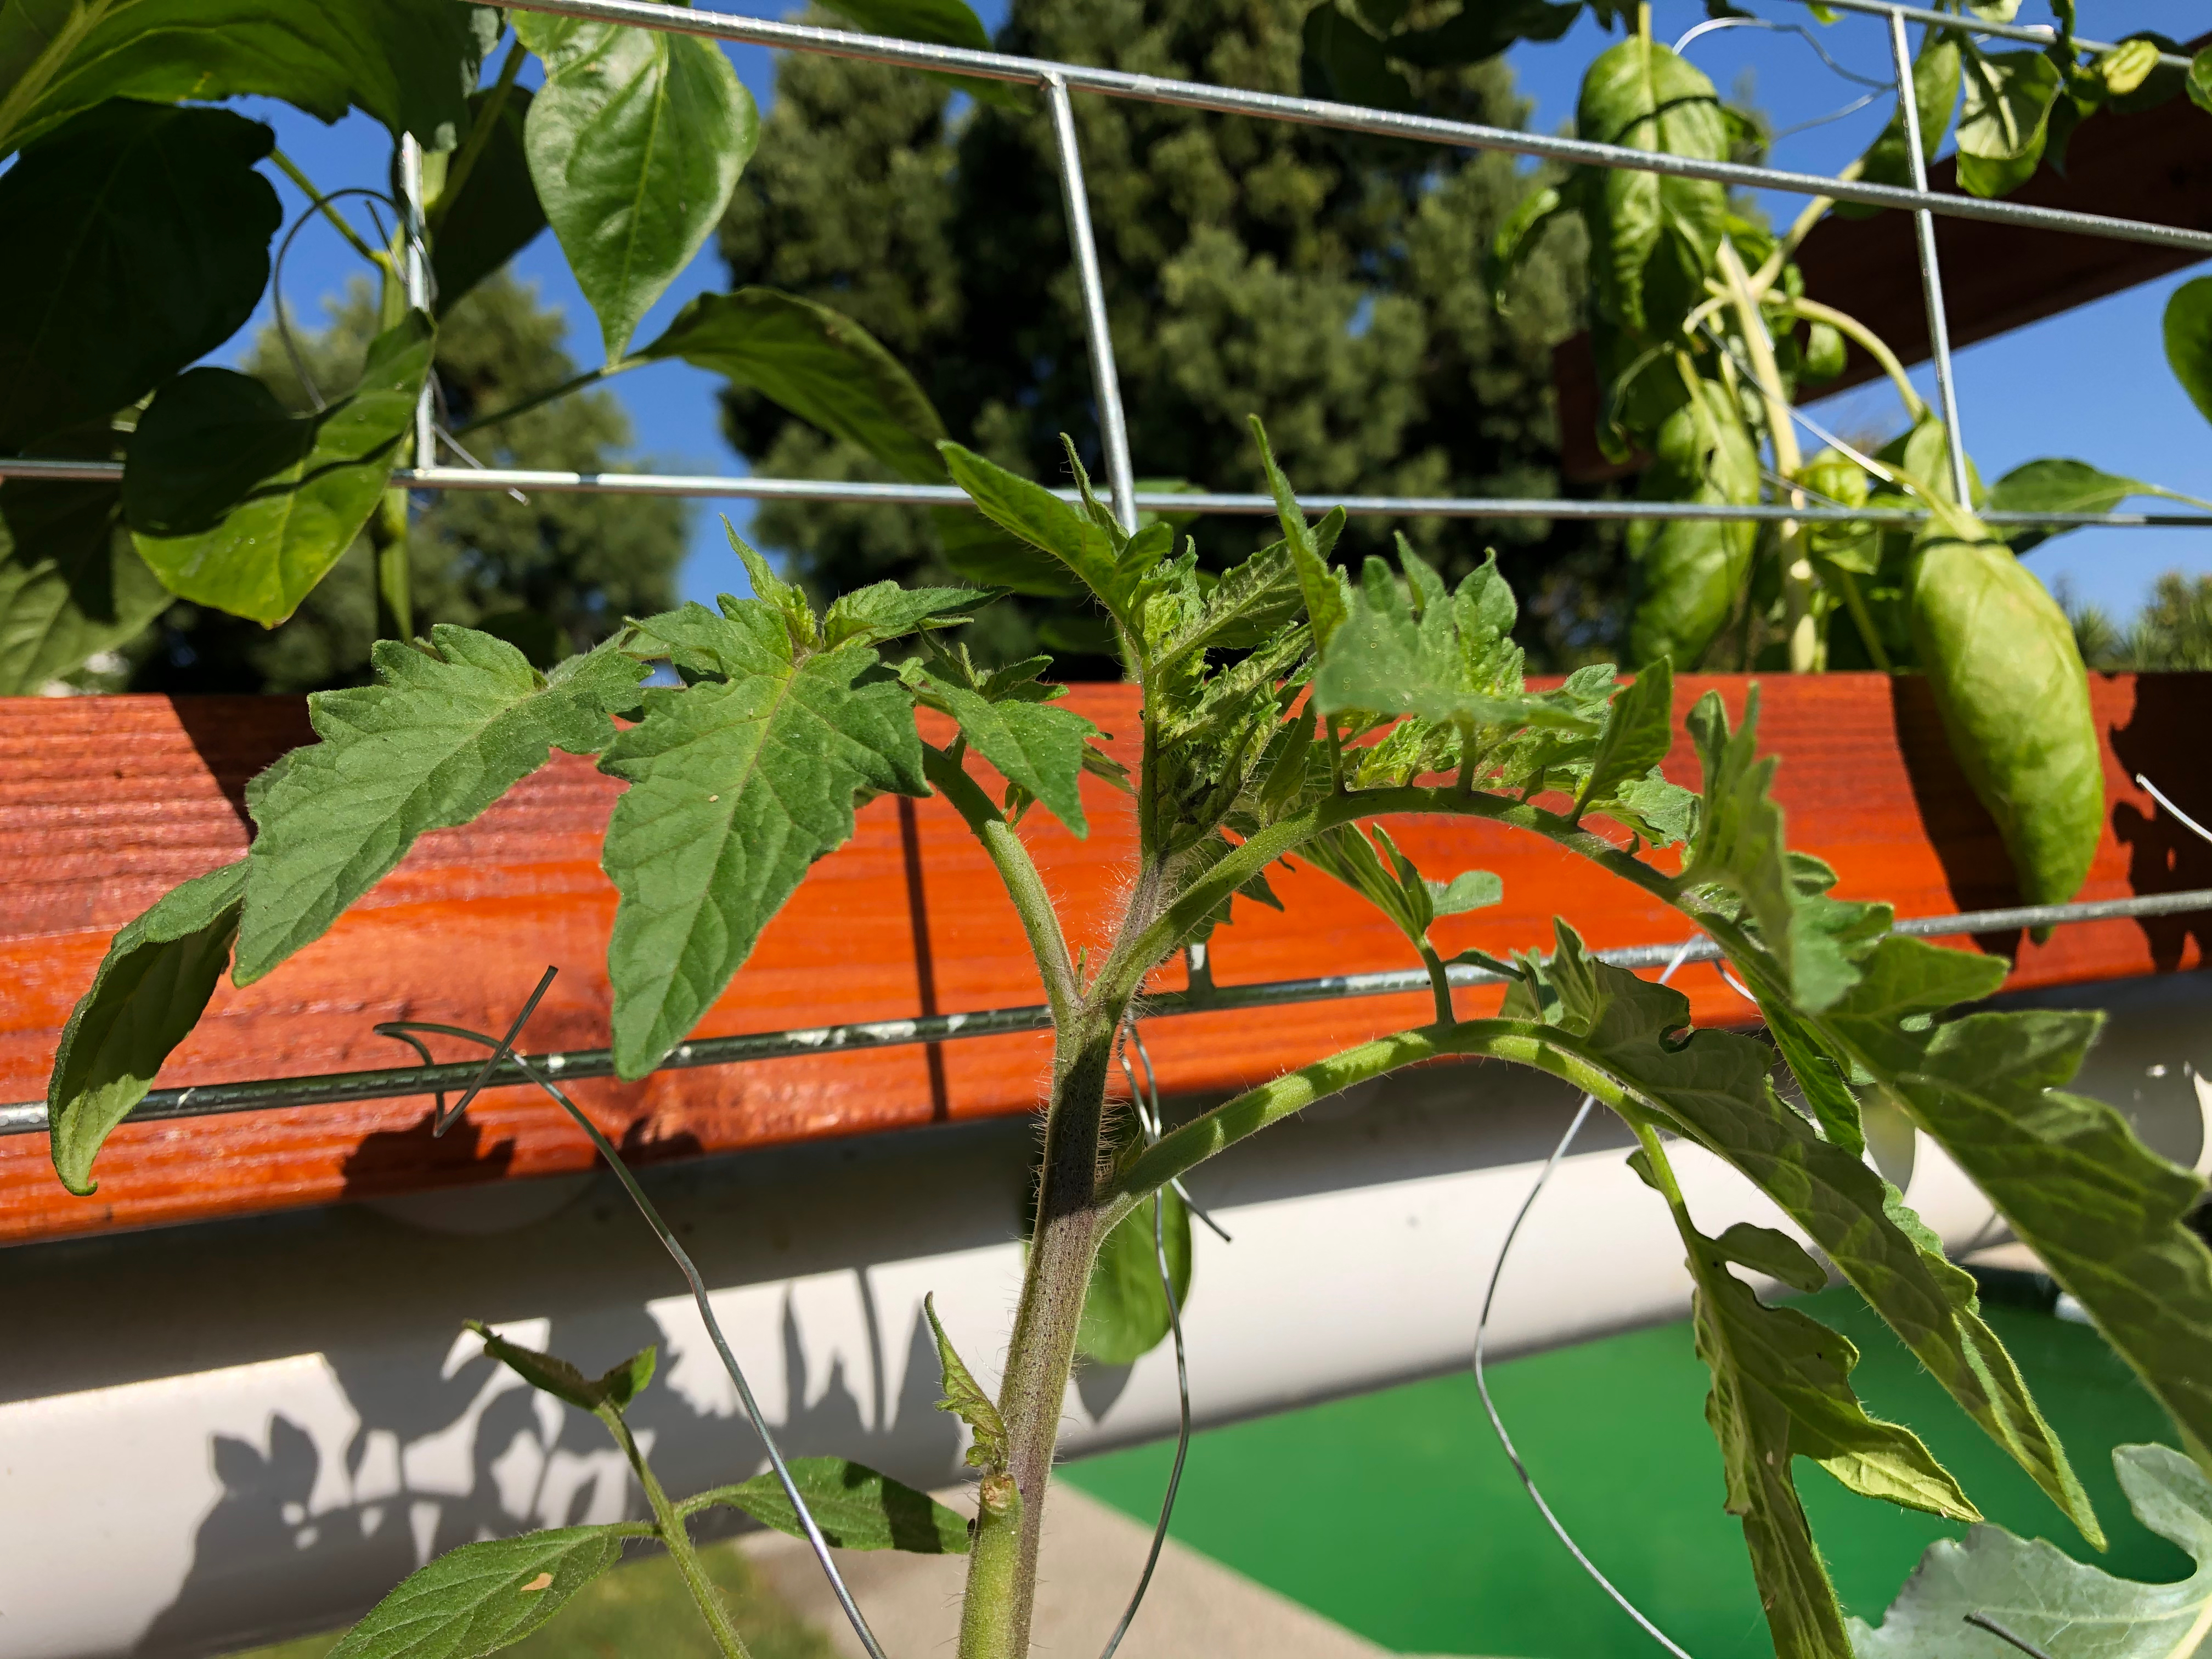 static/systems/vert-rdwc-1/images-front/growing-tomato.jpeg